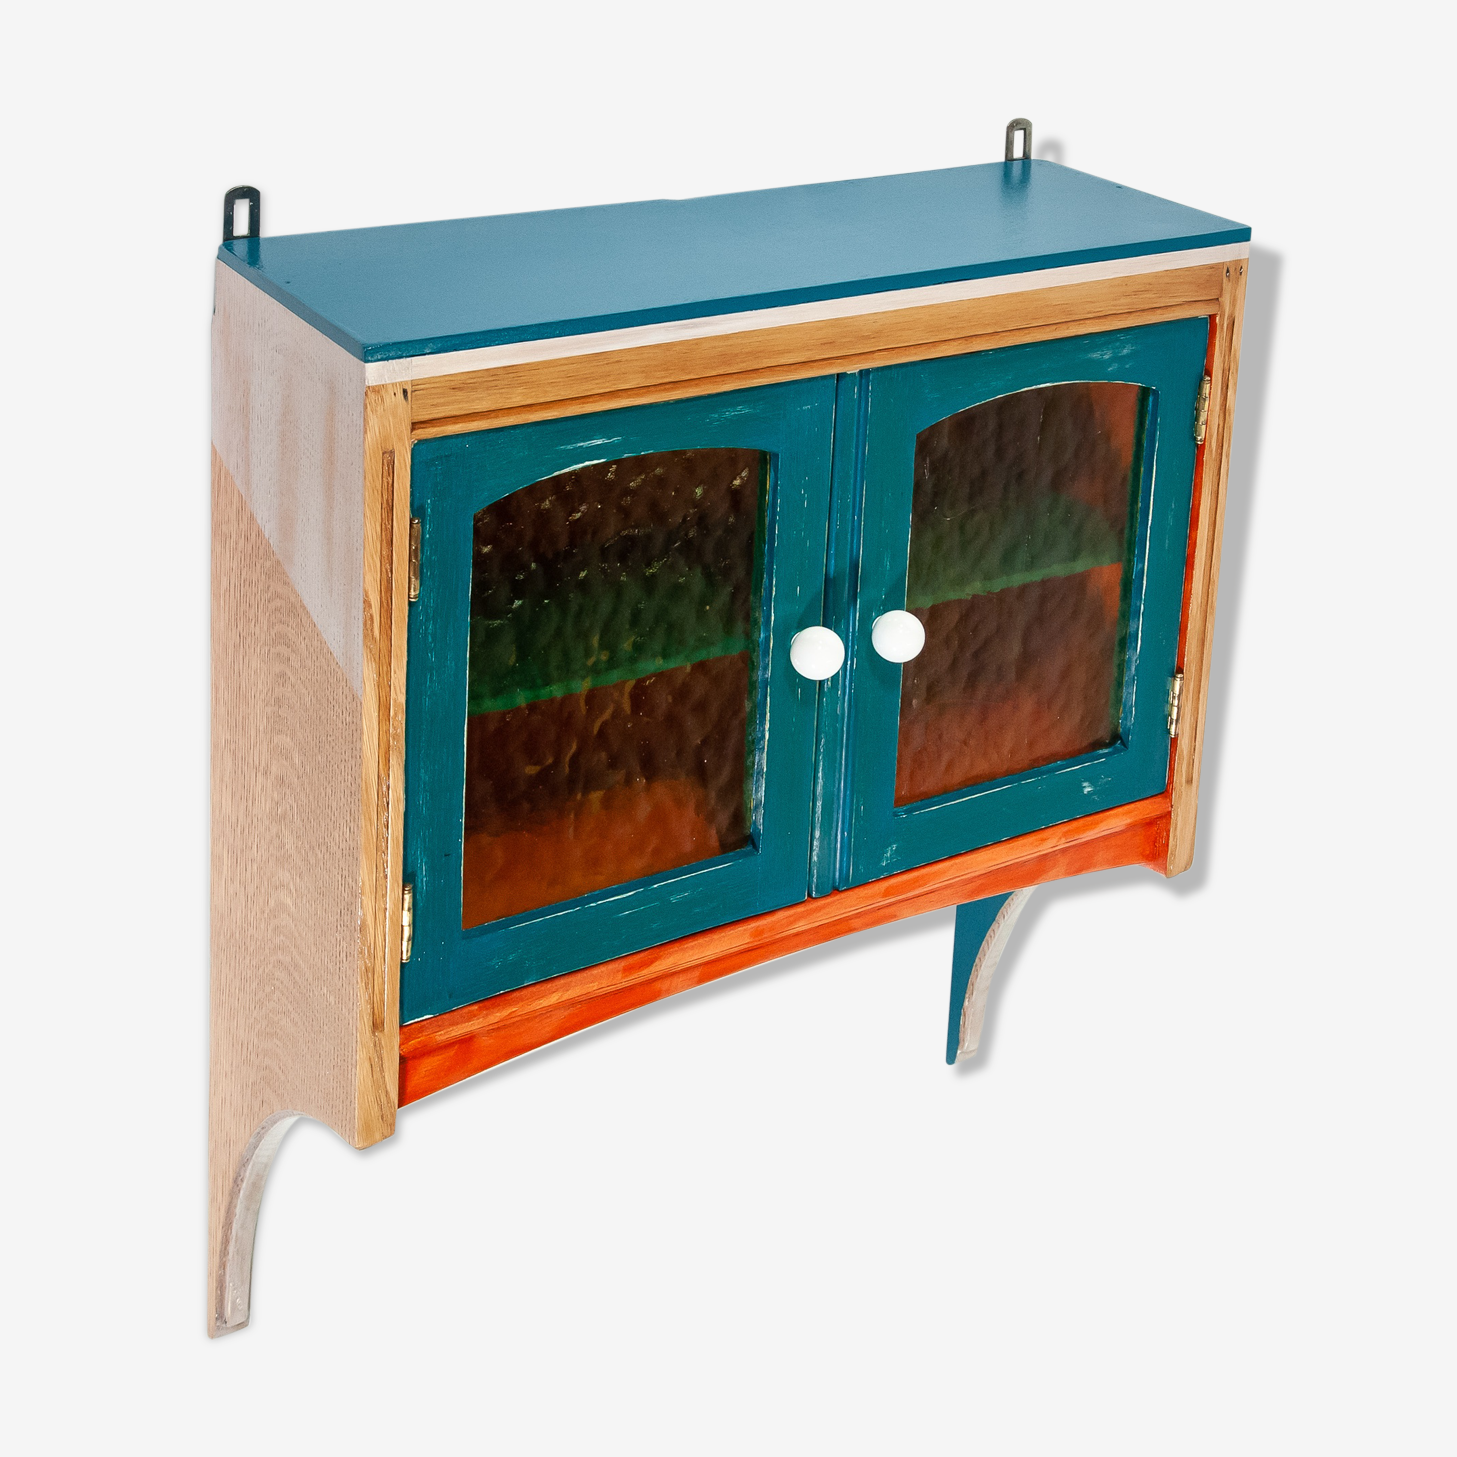 Wall shelf in solid oak blue, orange, white patinated with doors